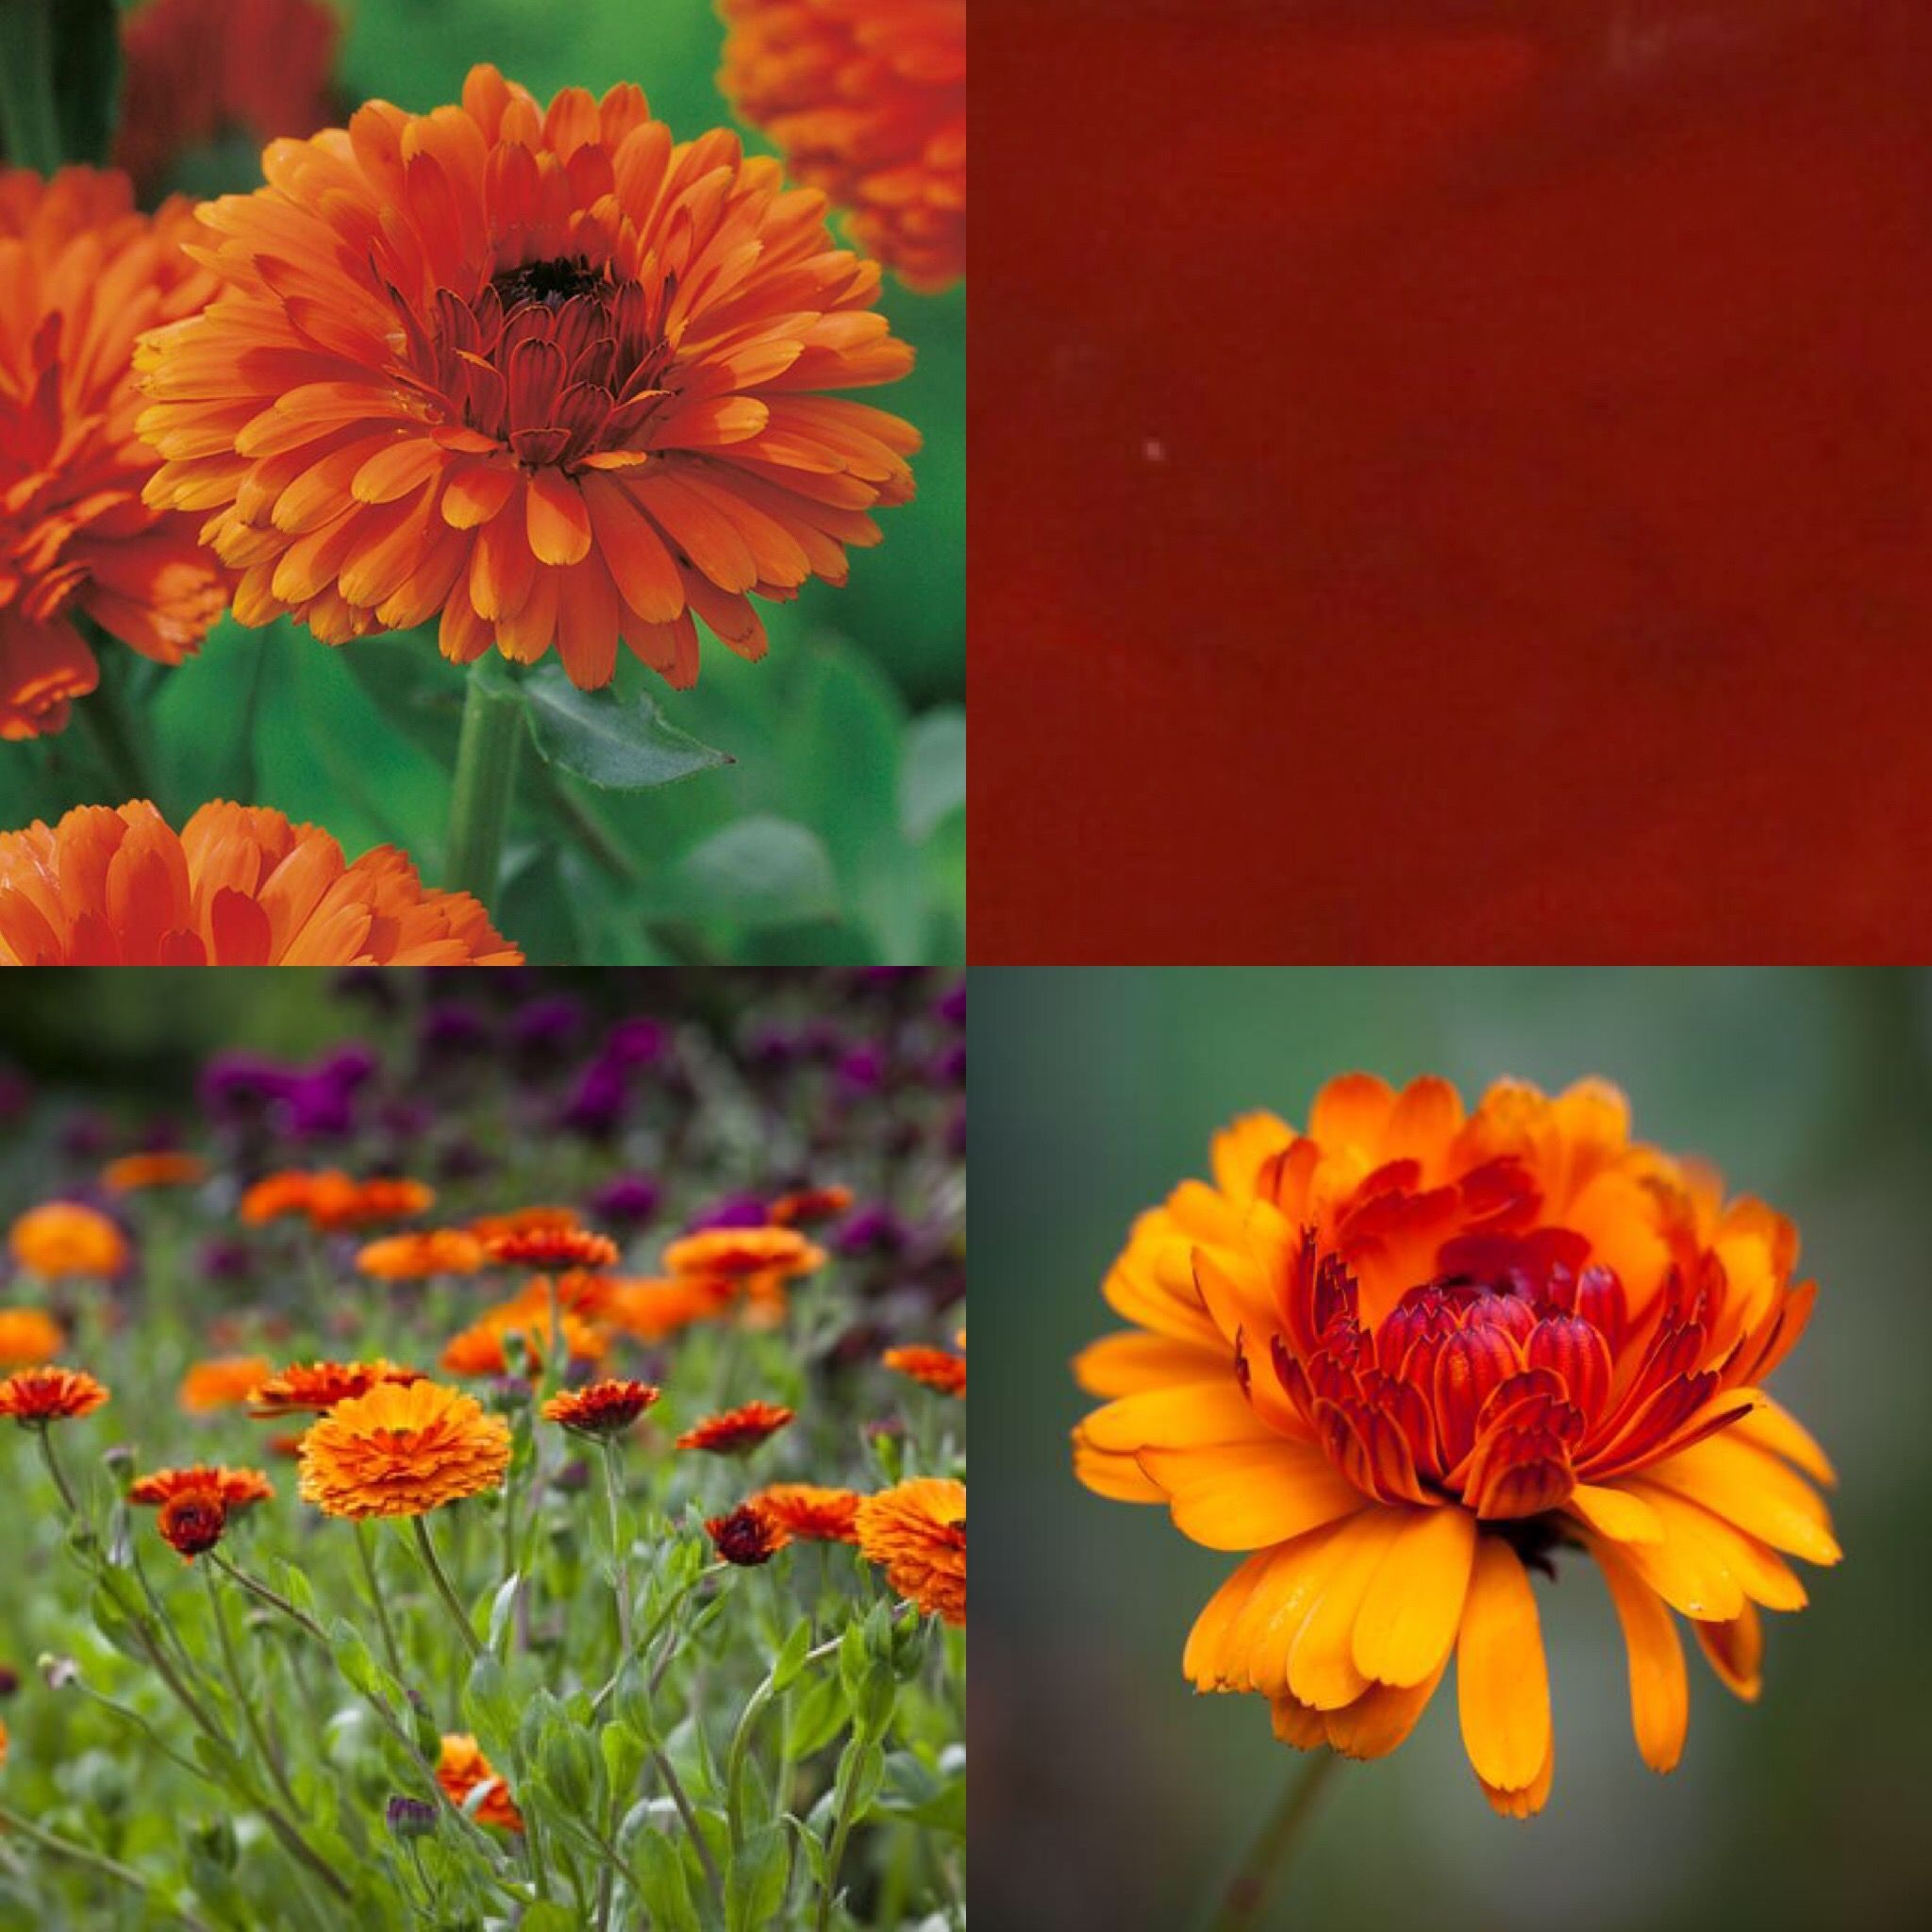 Calendula is such a beautiful, bright, sunny flower. Our